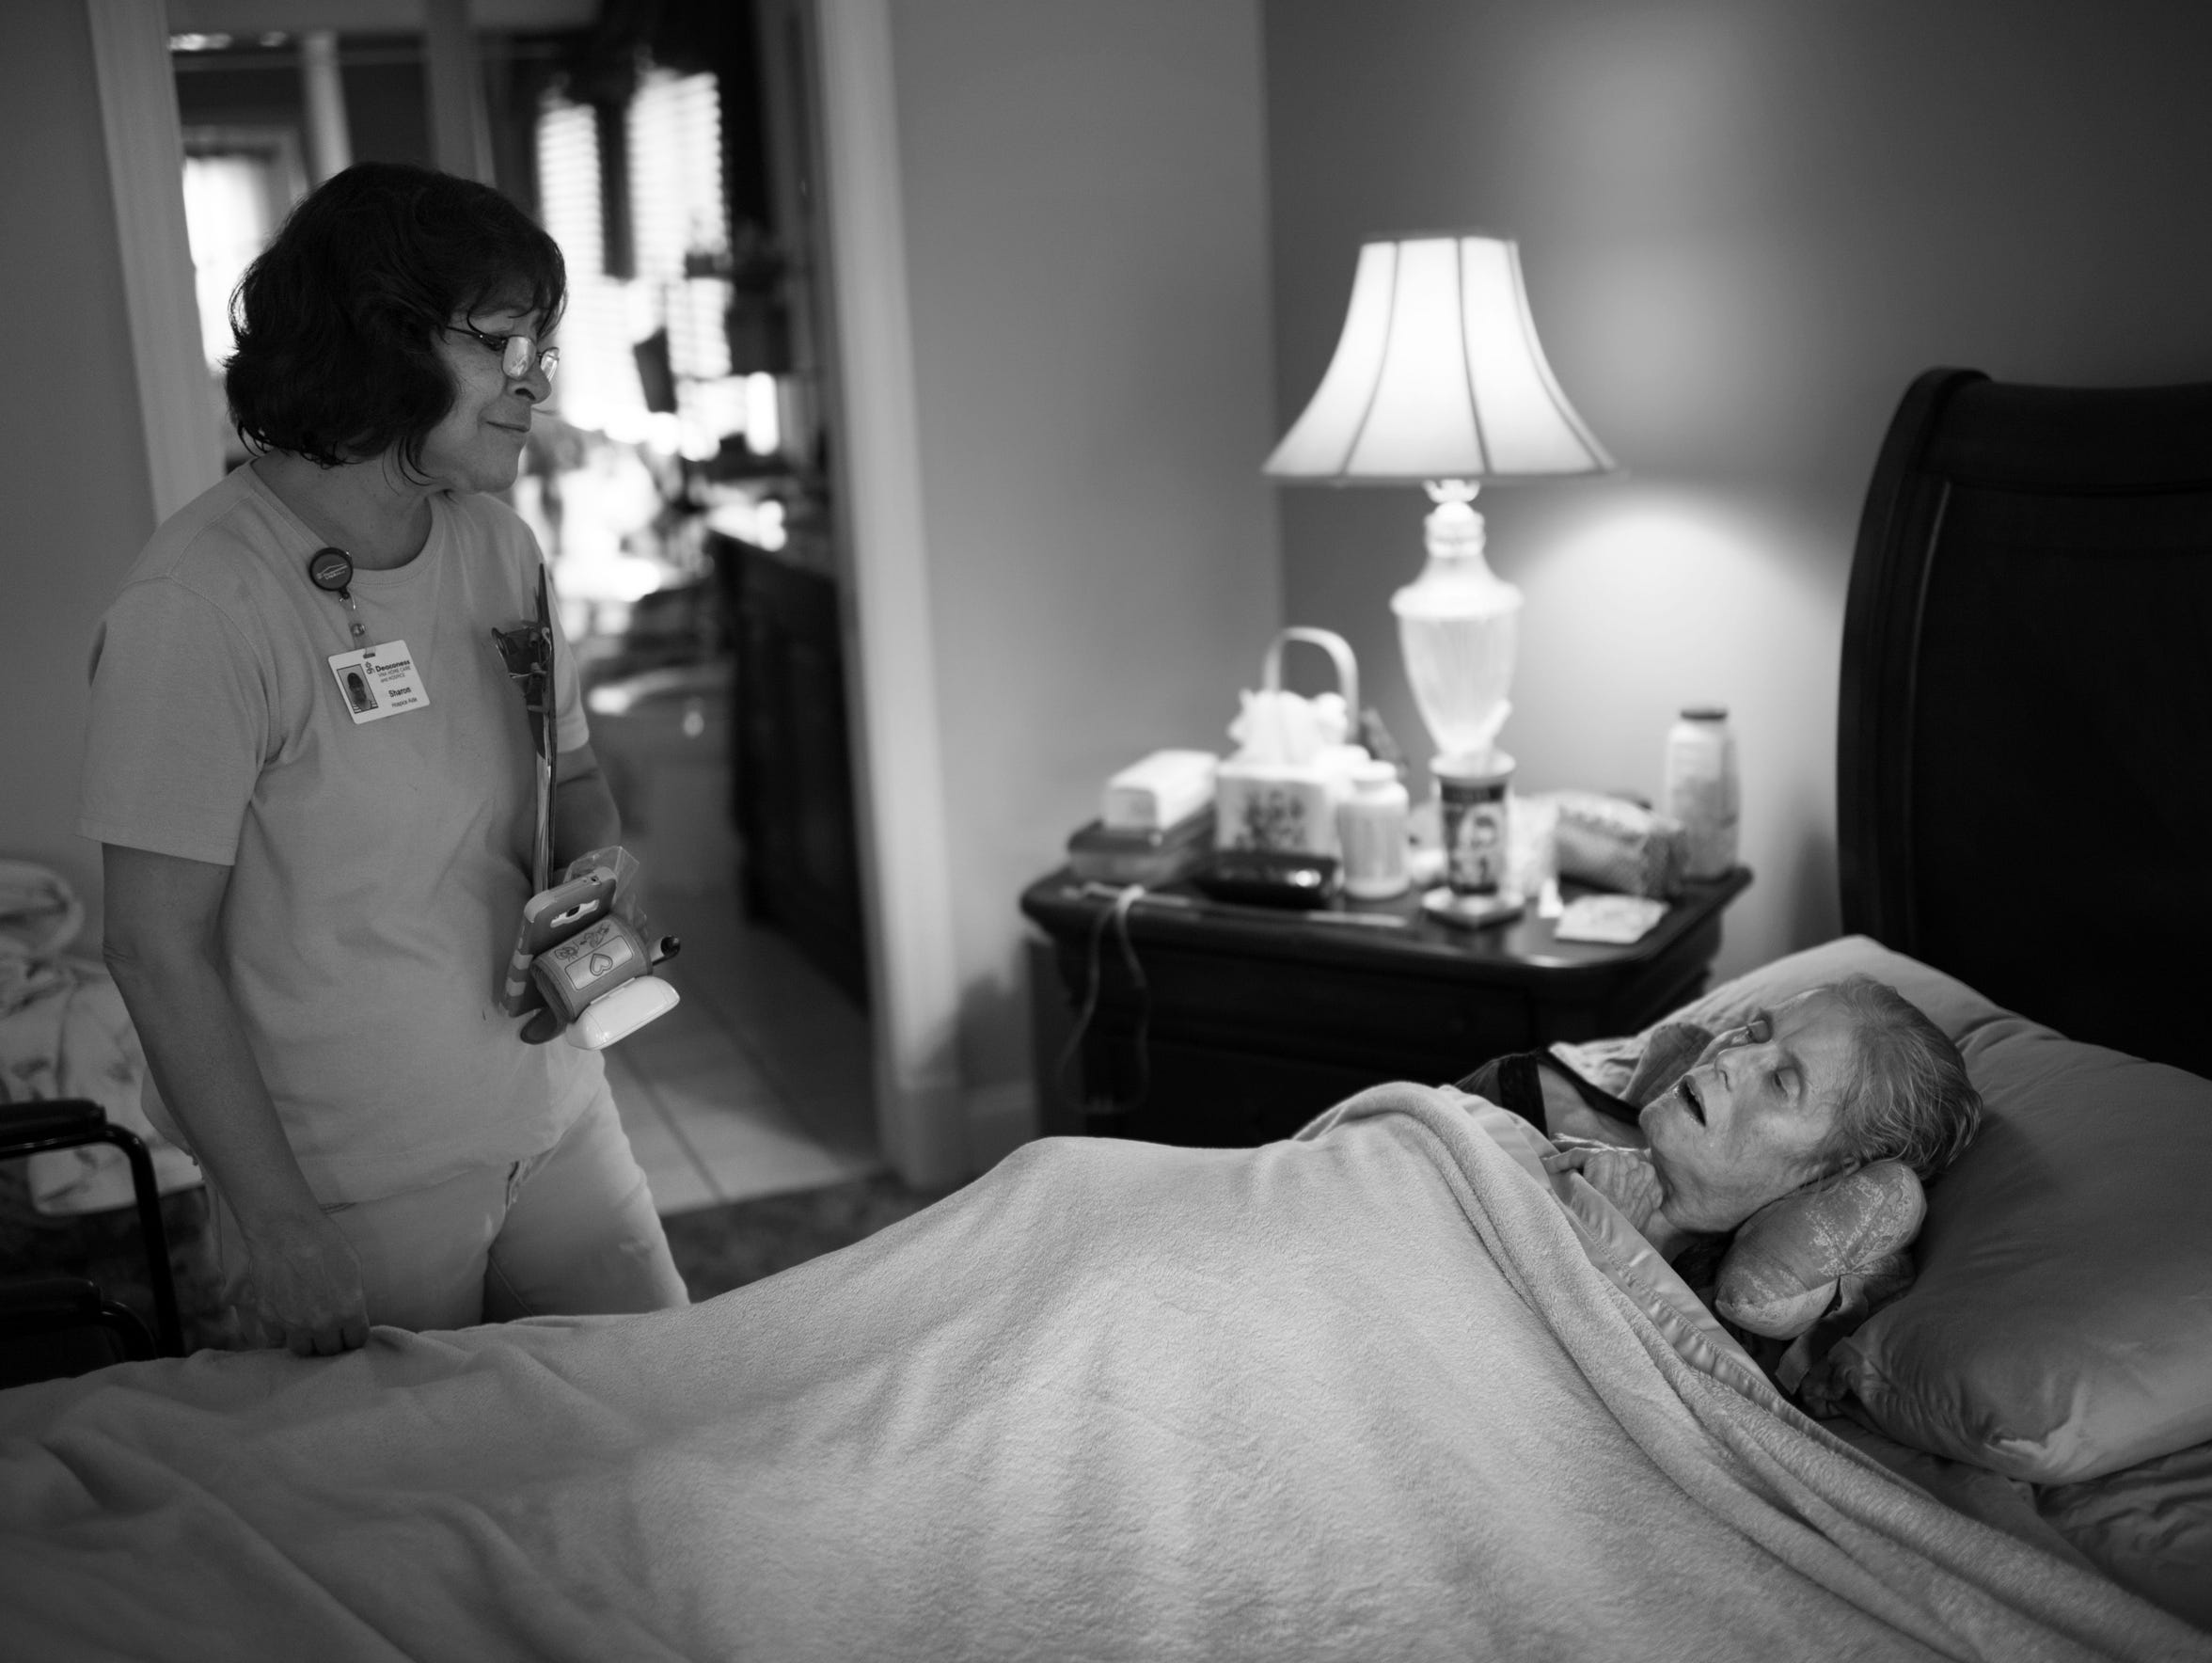 Sharon Brinksneader, a hospice aide with Deaconess